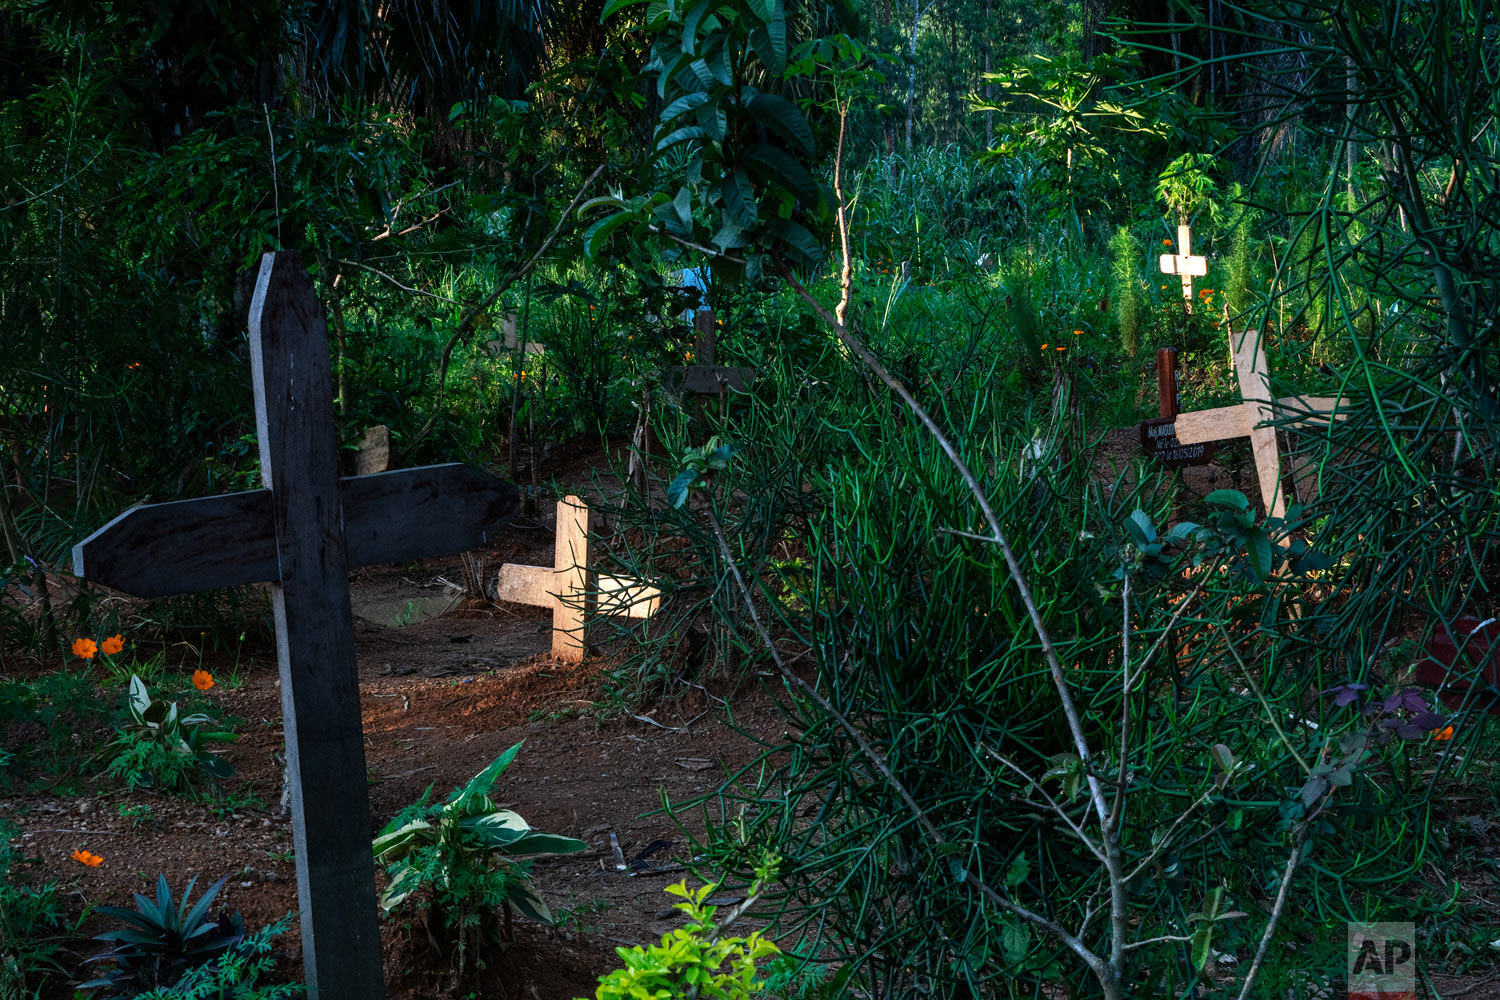 Light shines on freshly dug graves in Beni, Congo, July 16, 2019. (AP Photo/Jerome Delay)